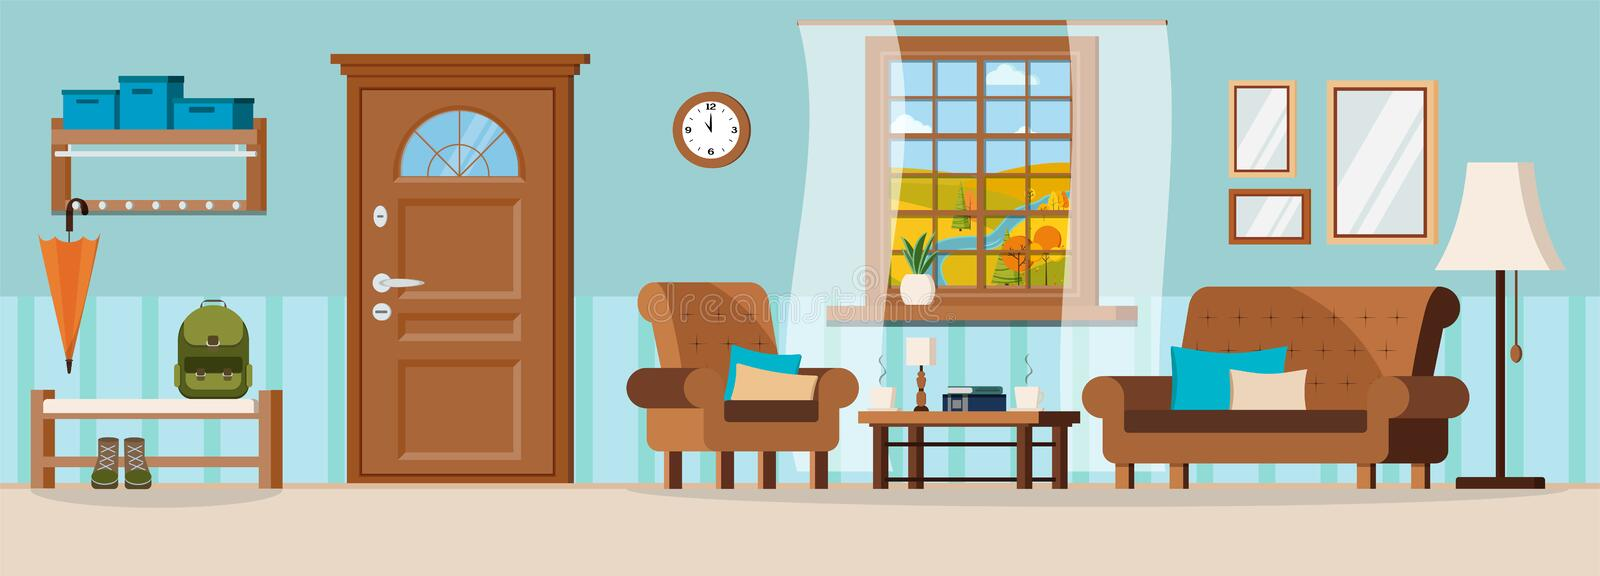 Flat cartoon style vector illustration cozy hallway with furniture, closed door, window view of autumn river landscape vector illustration